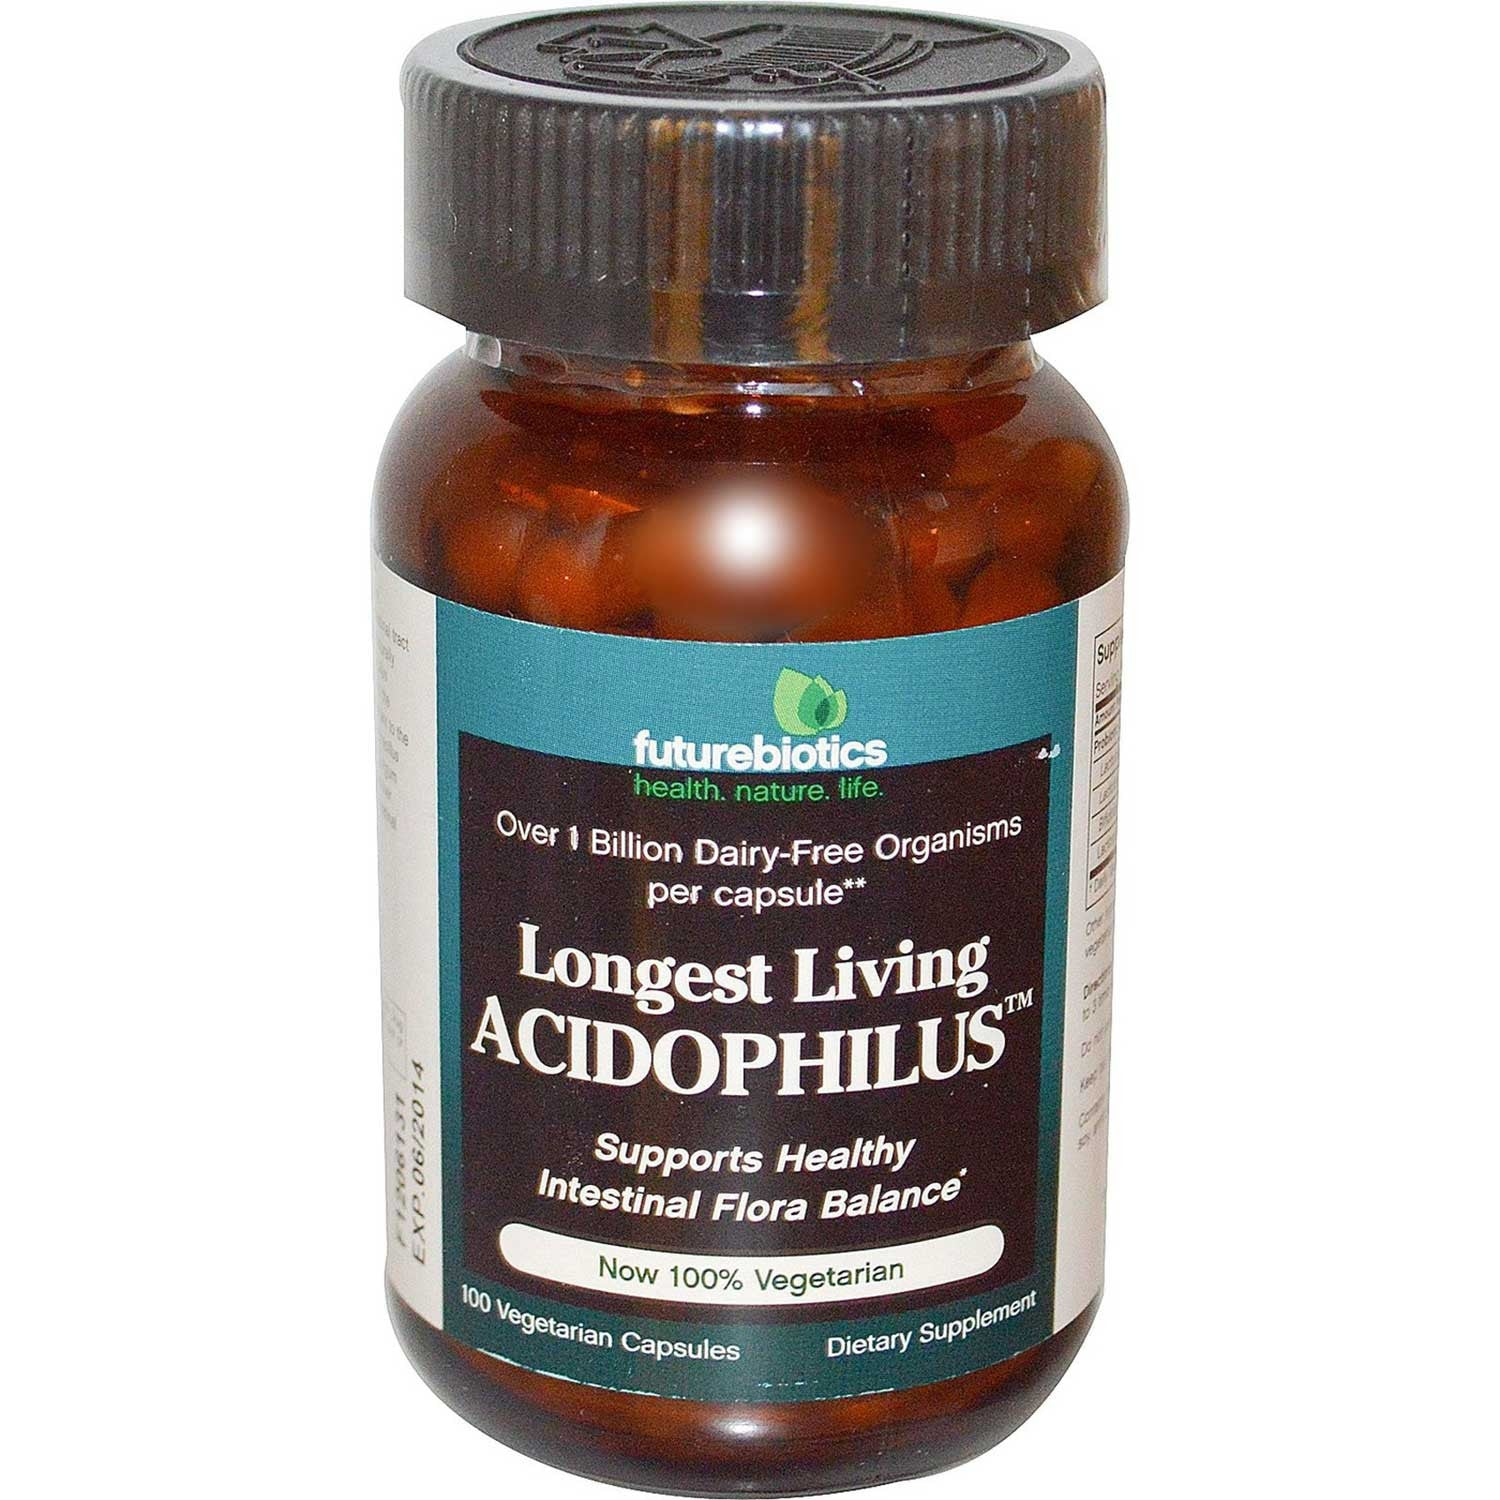 Futurebiotics Longest Living Acidophilus +, 100 caps.-NaturesWisdom